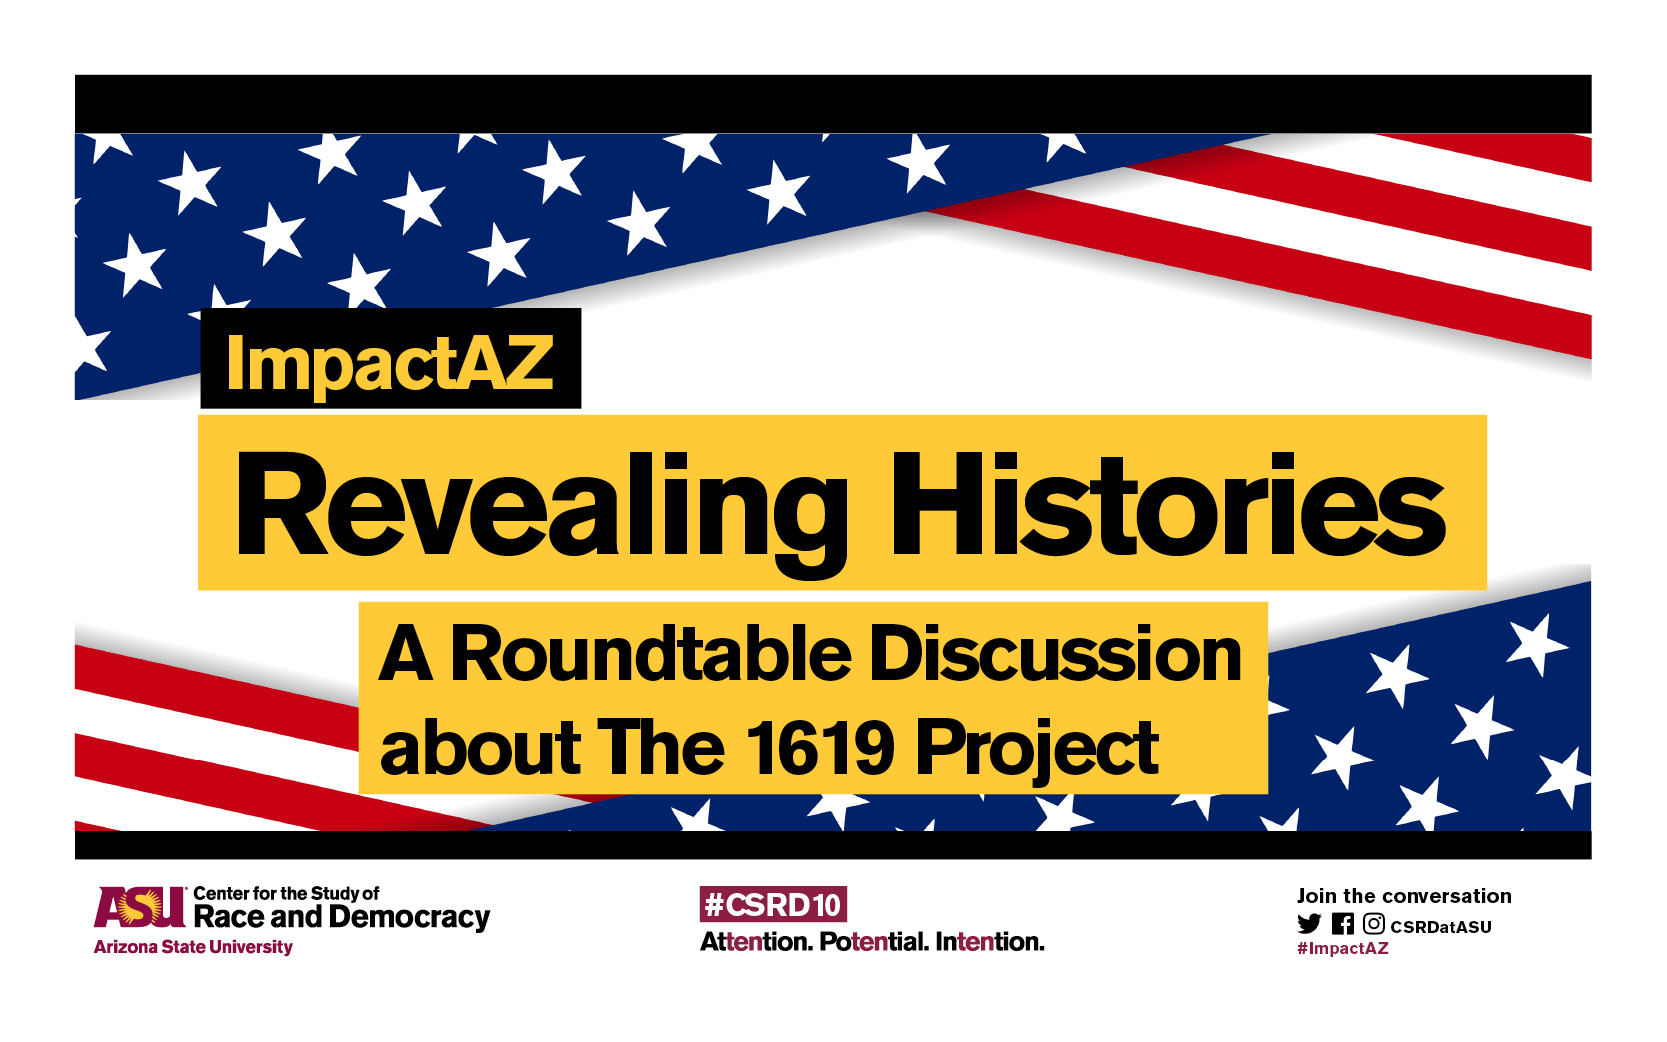 Revealing Histories Roundtable